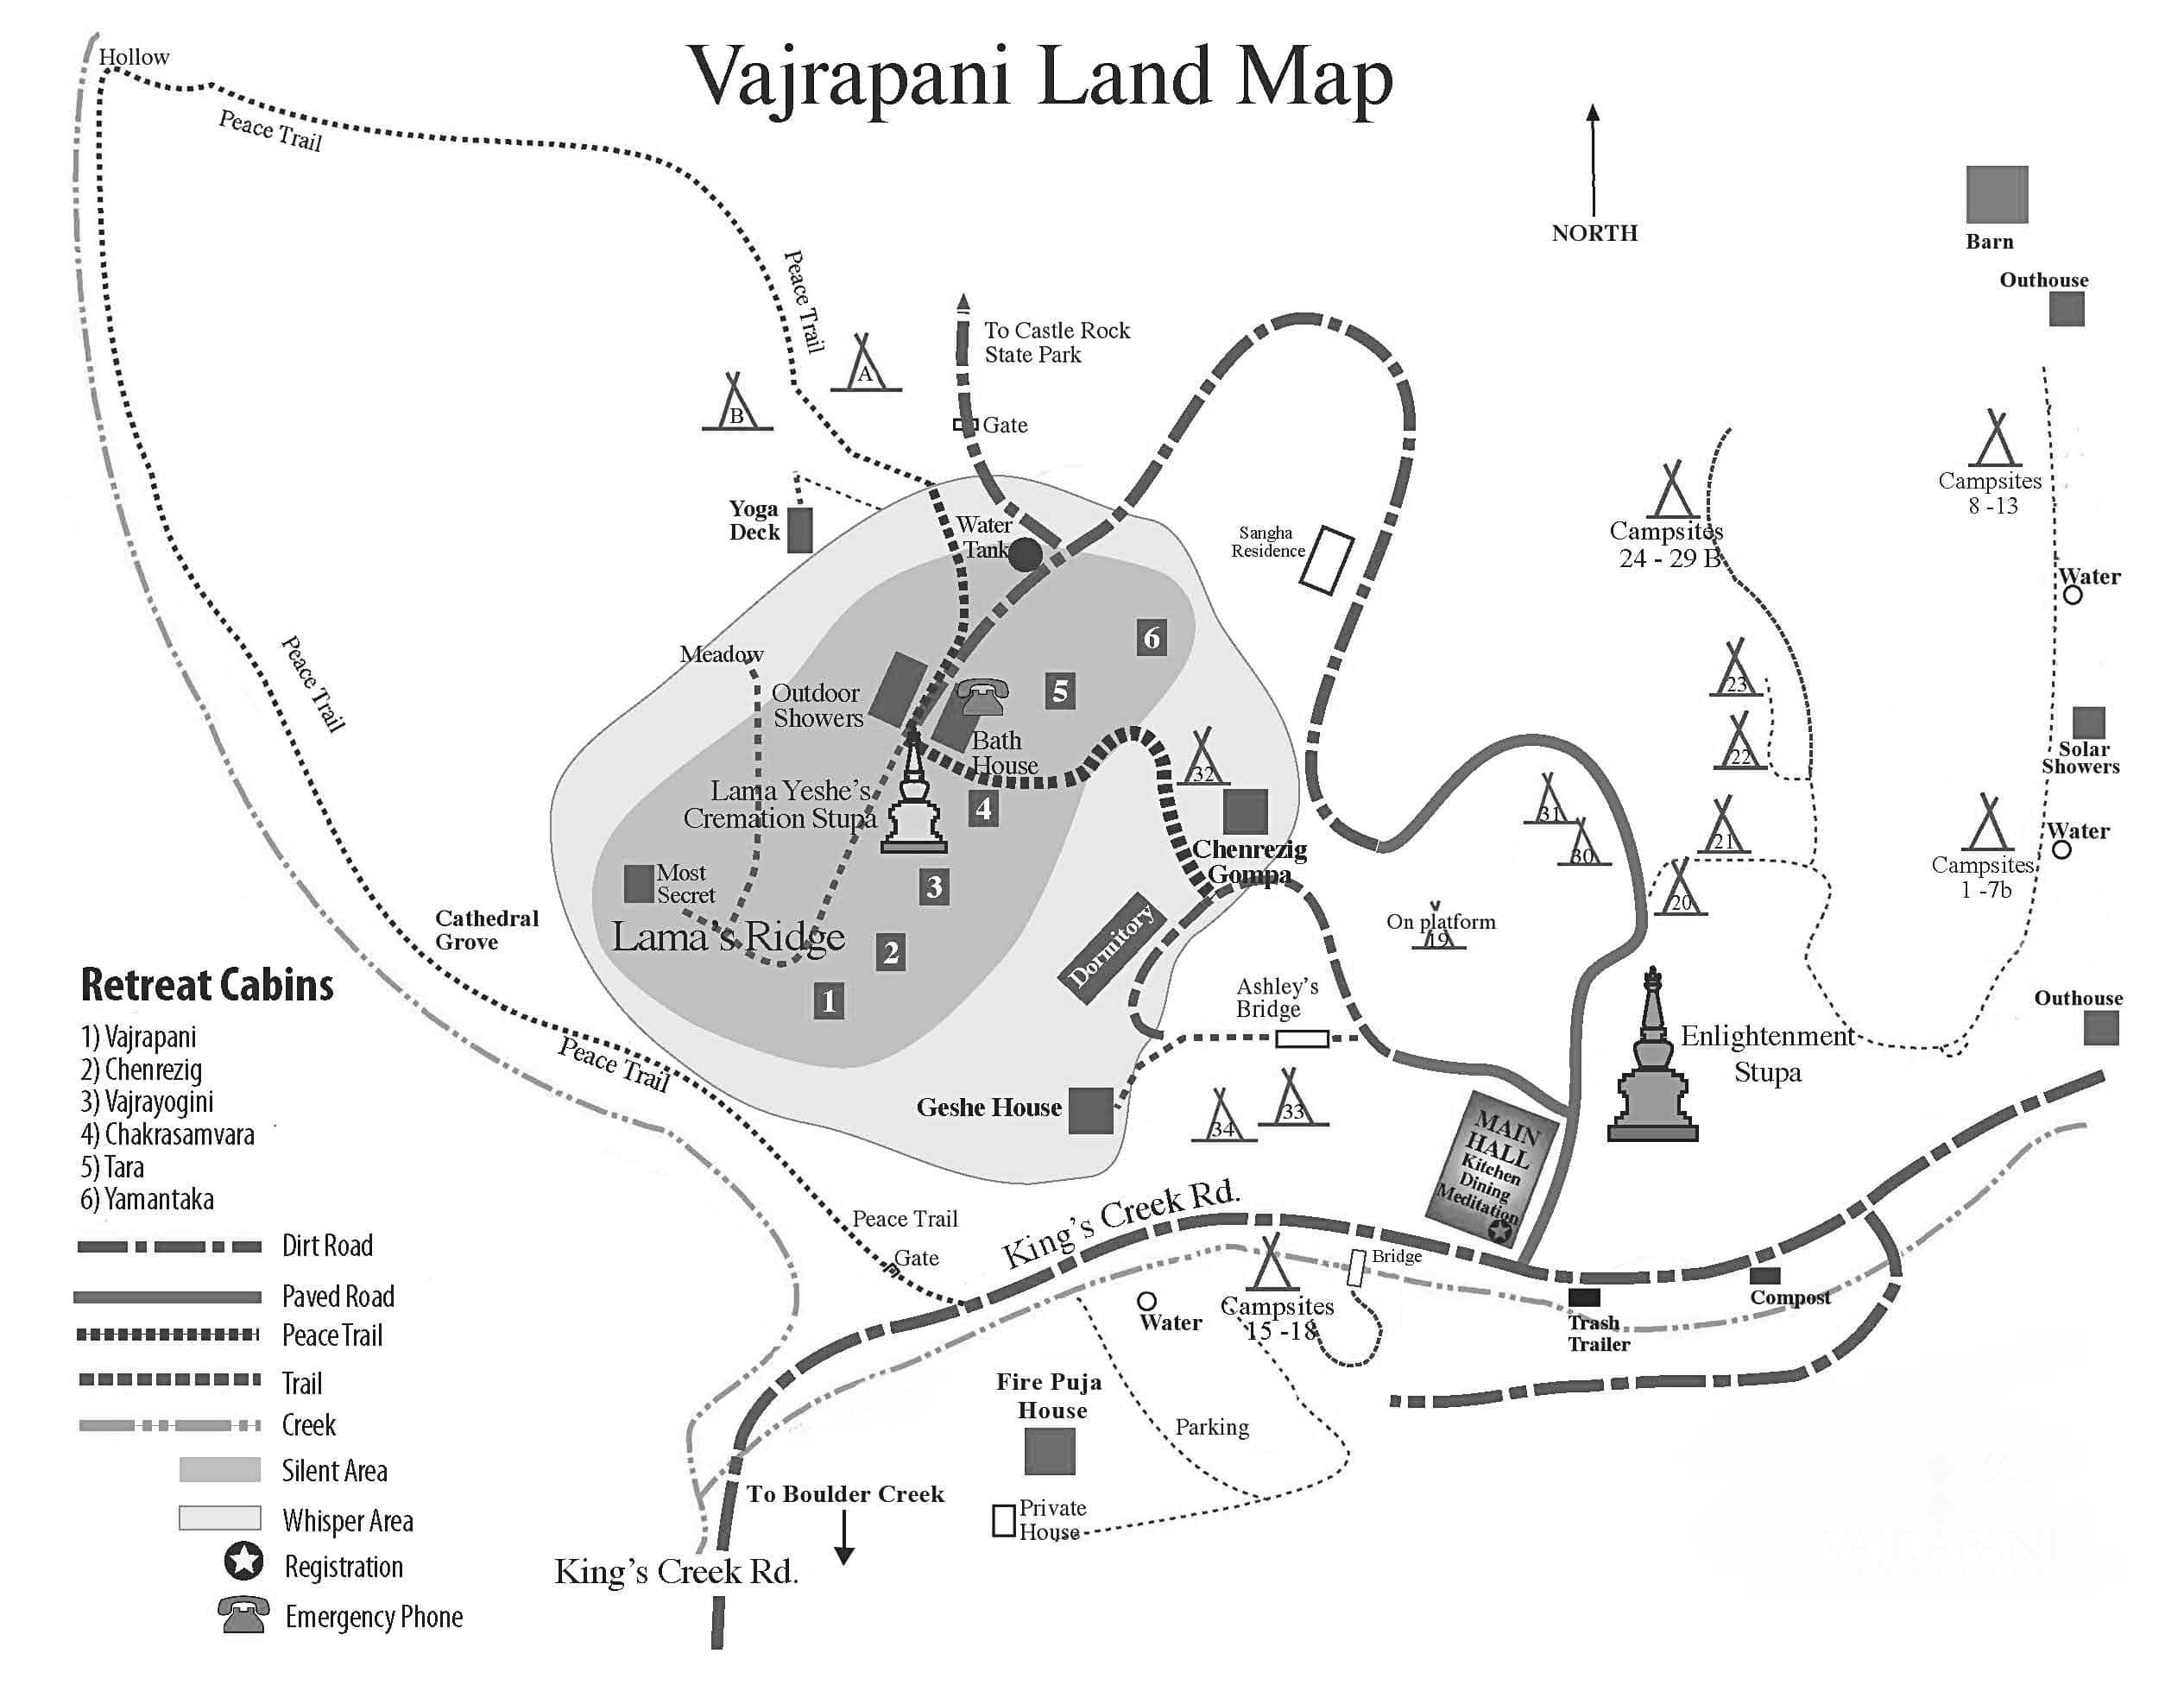 Vajrapani Land Map